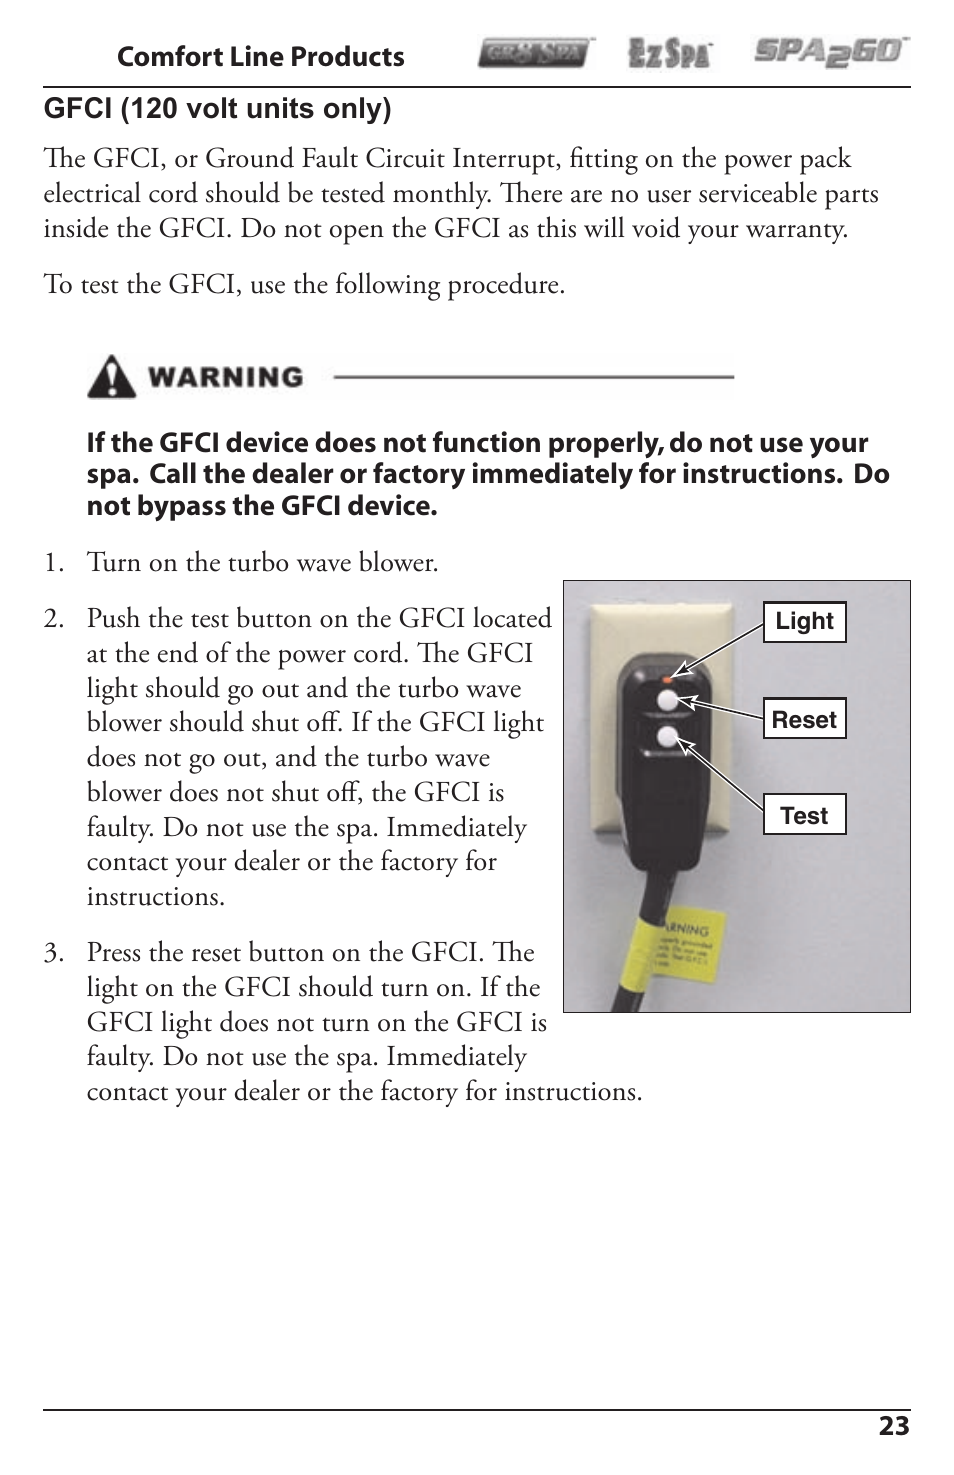 Activeforever Spa2go Stg 1 User Manual Page 23 28 Also For Ground Fault Circuit Interrupt 2 3 4